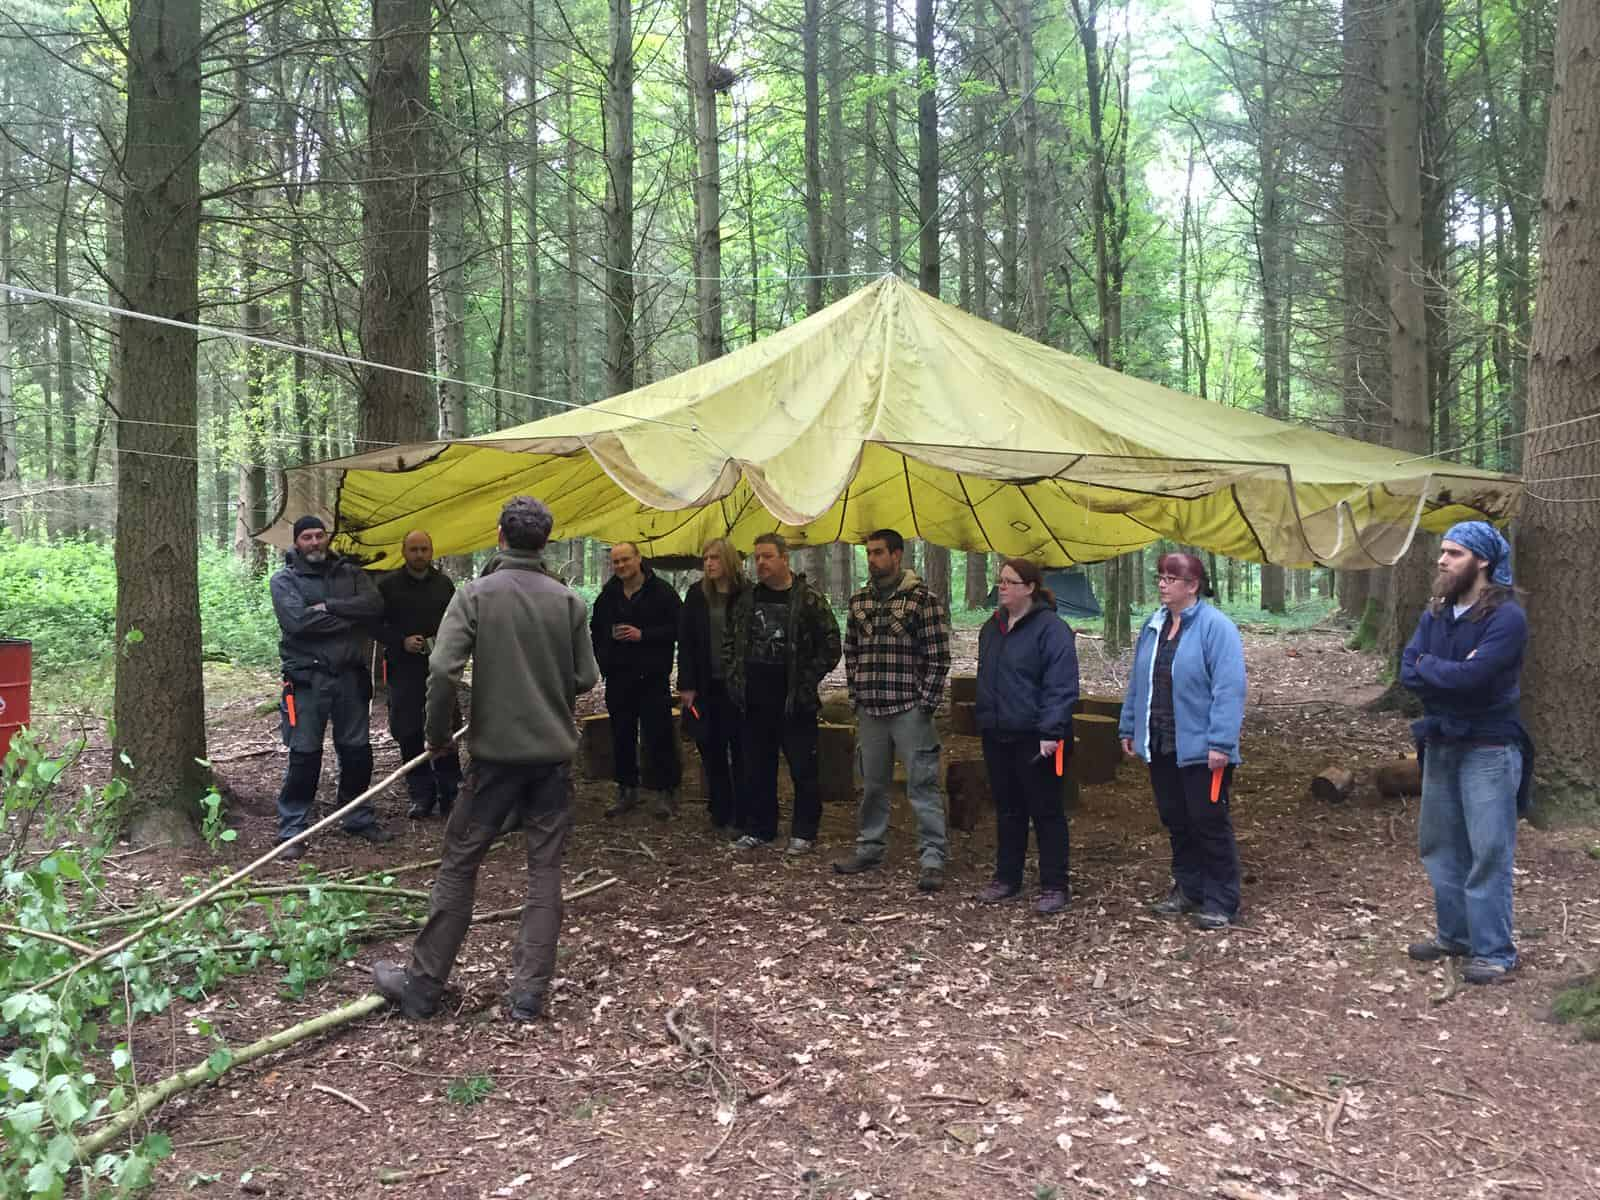 Bushcraft courses from Wildway Bushcraft